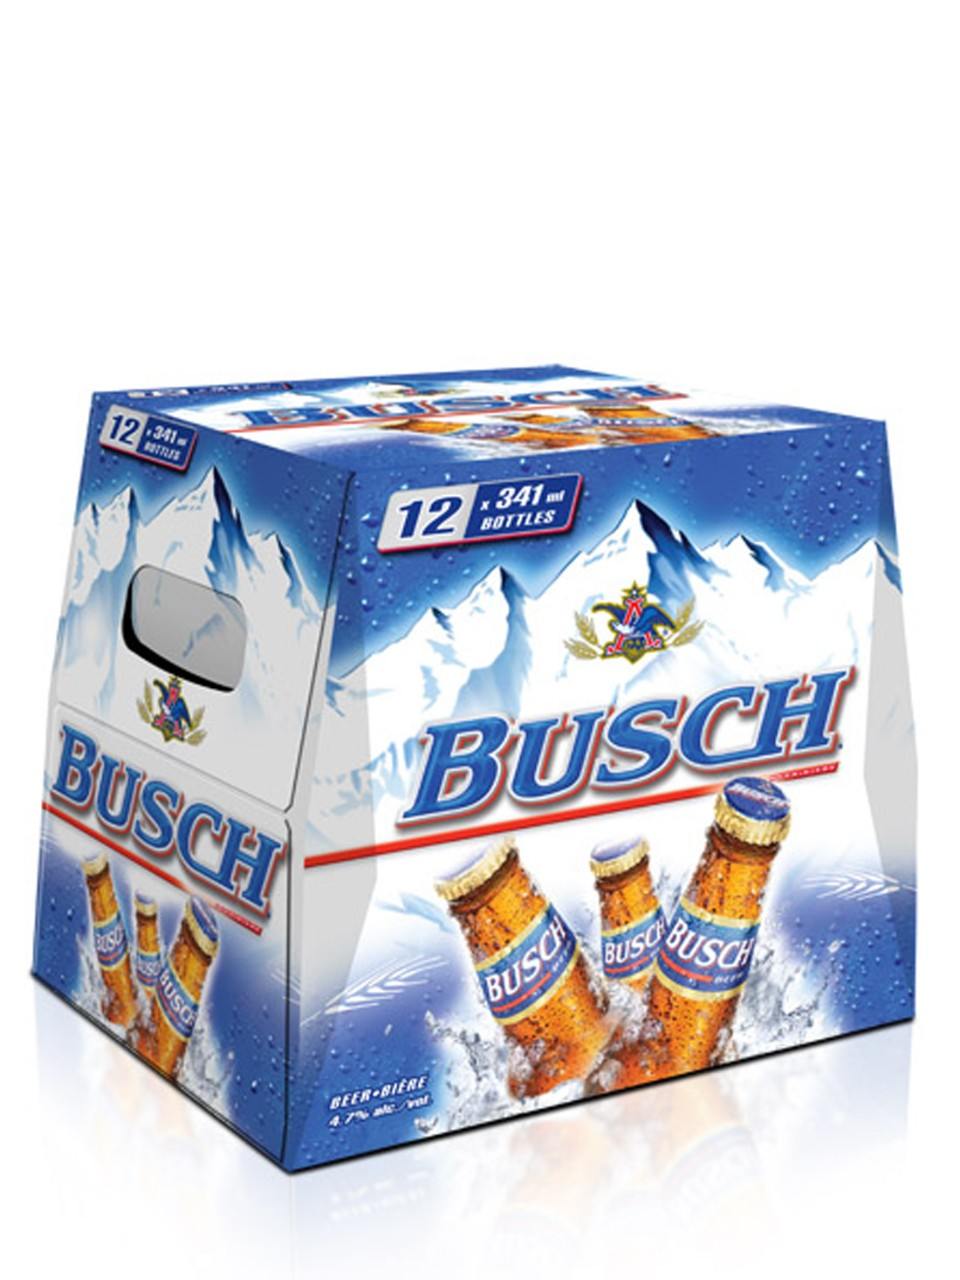 Busch from LCBO